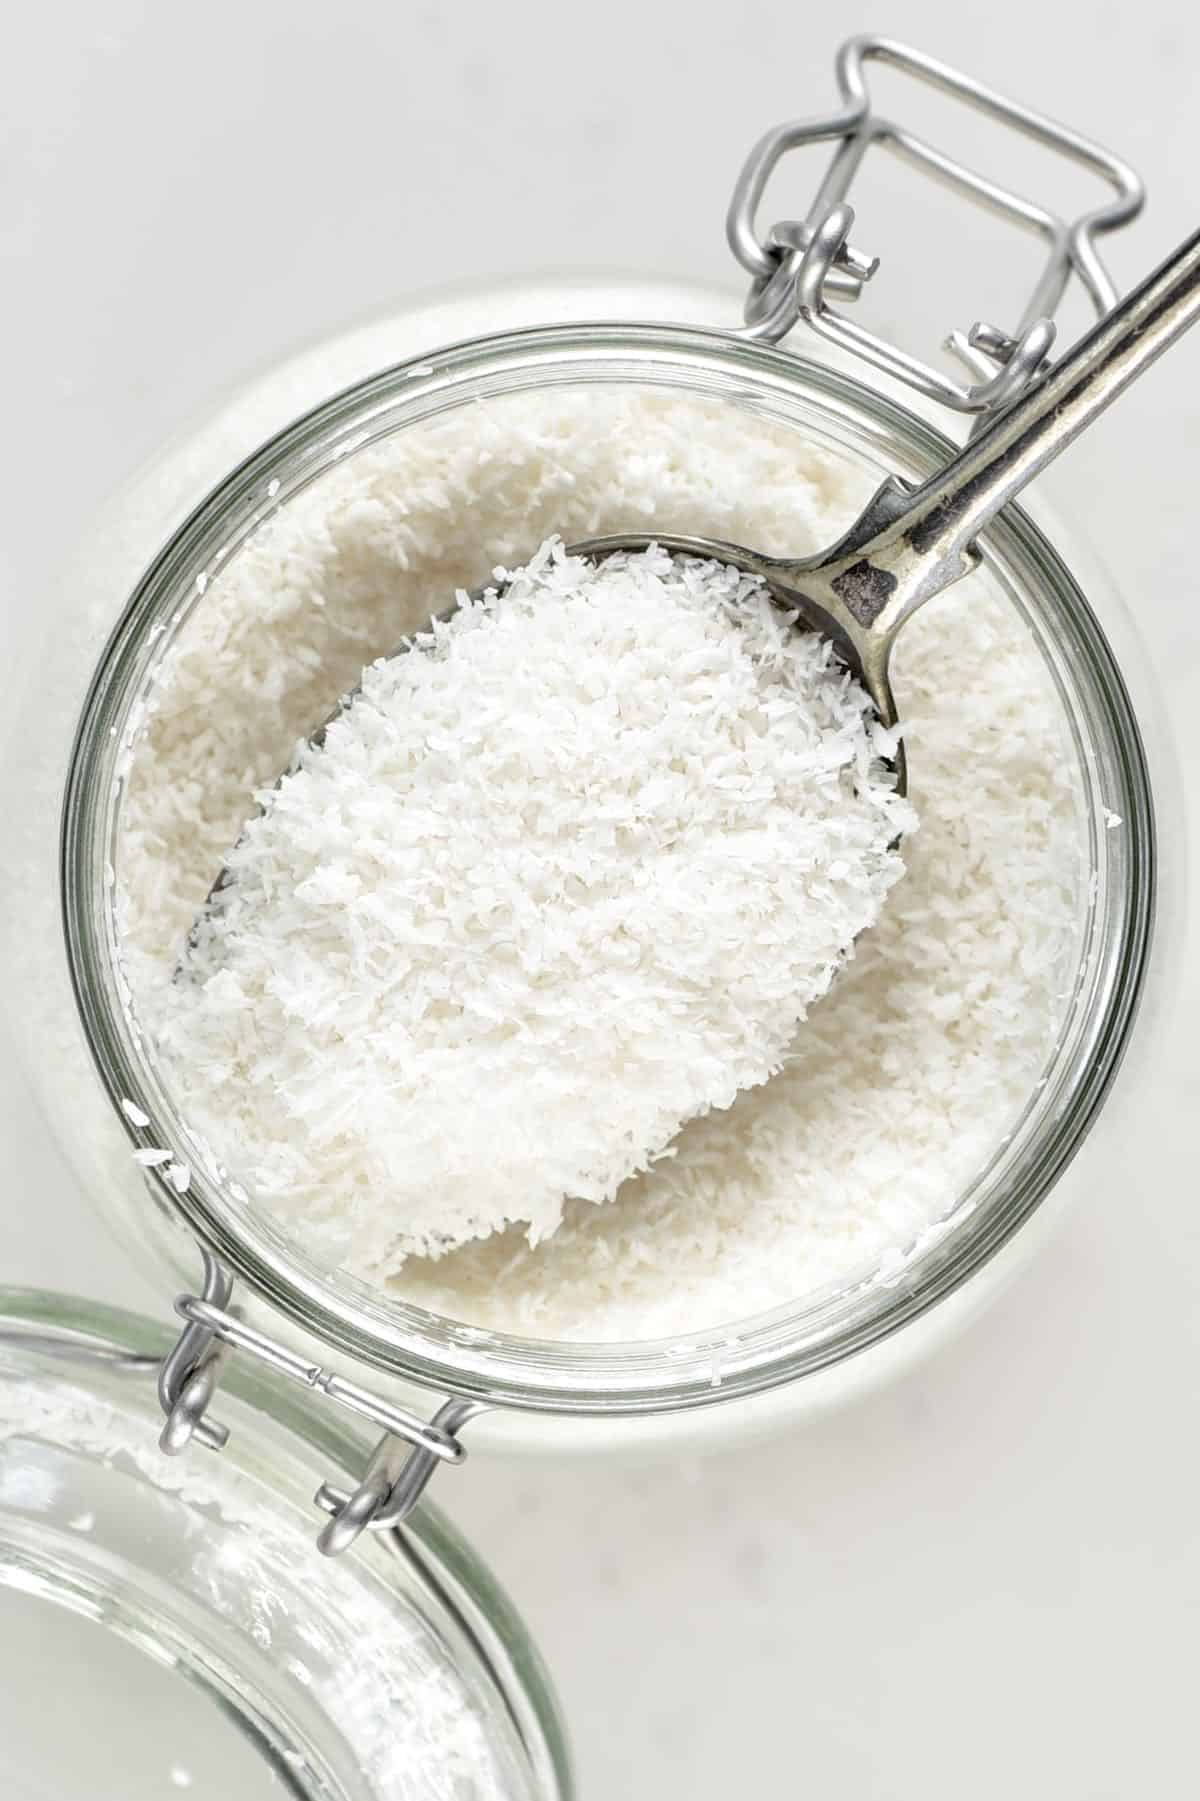 A spoonful of Shredded Coconut over a jar